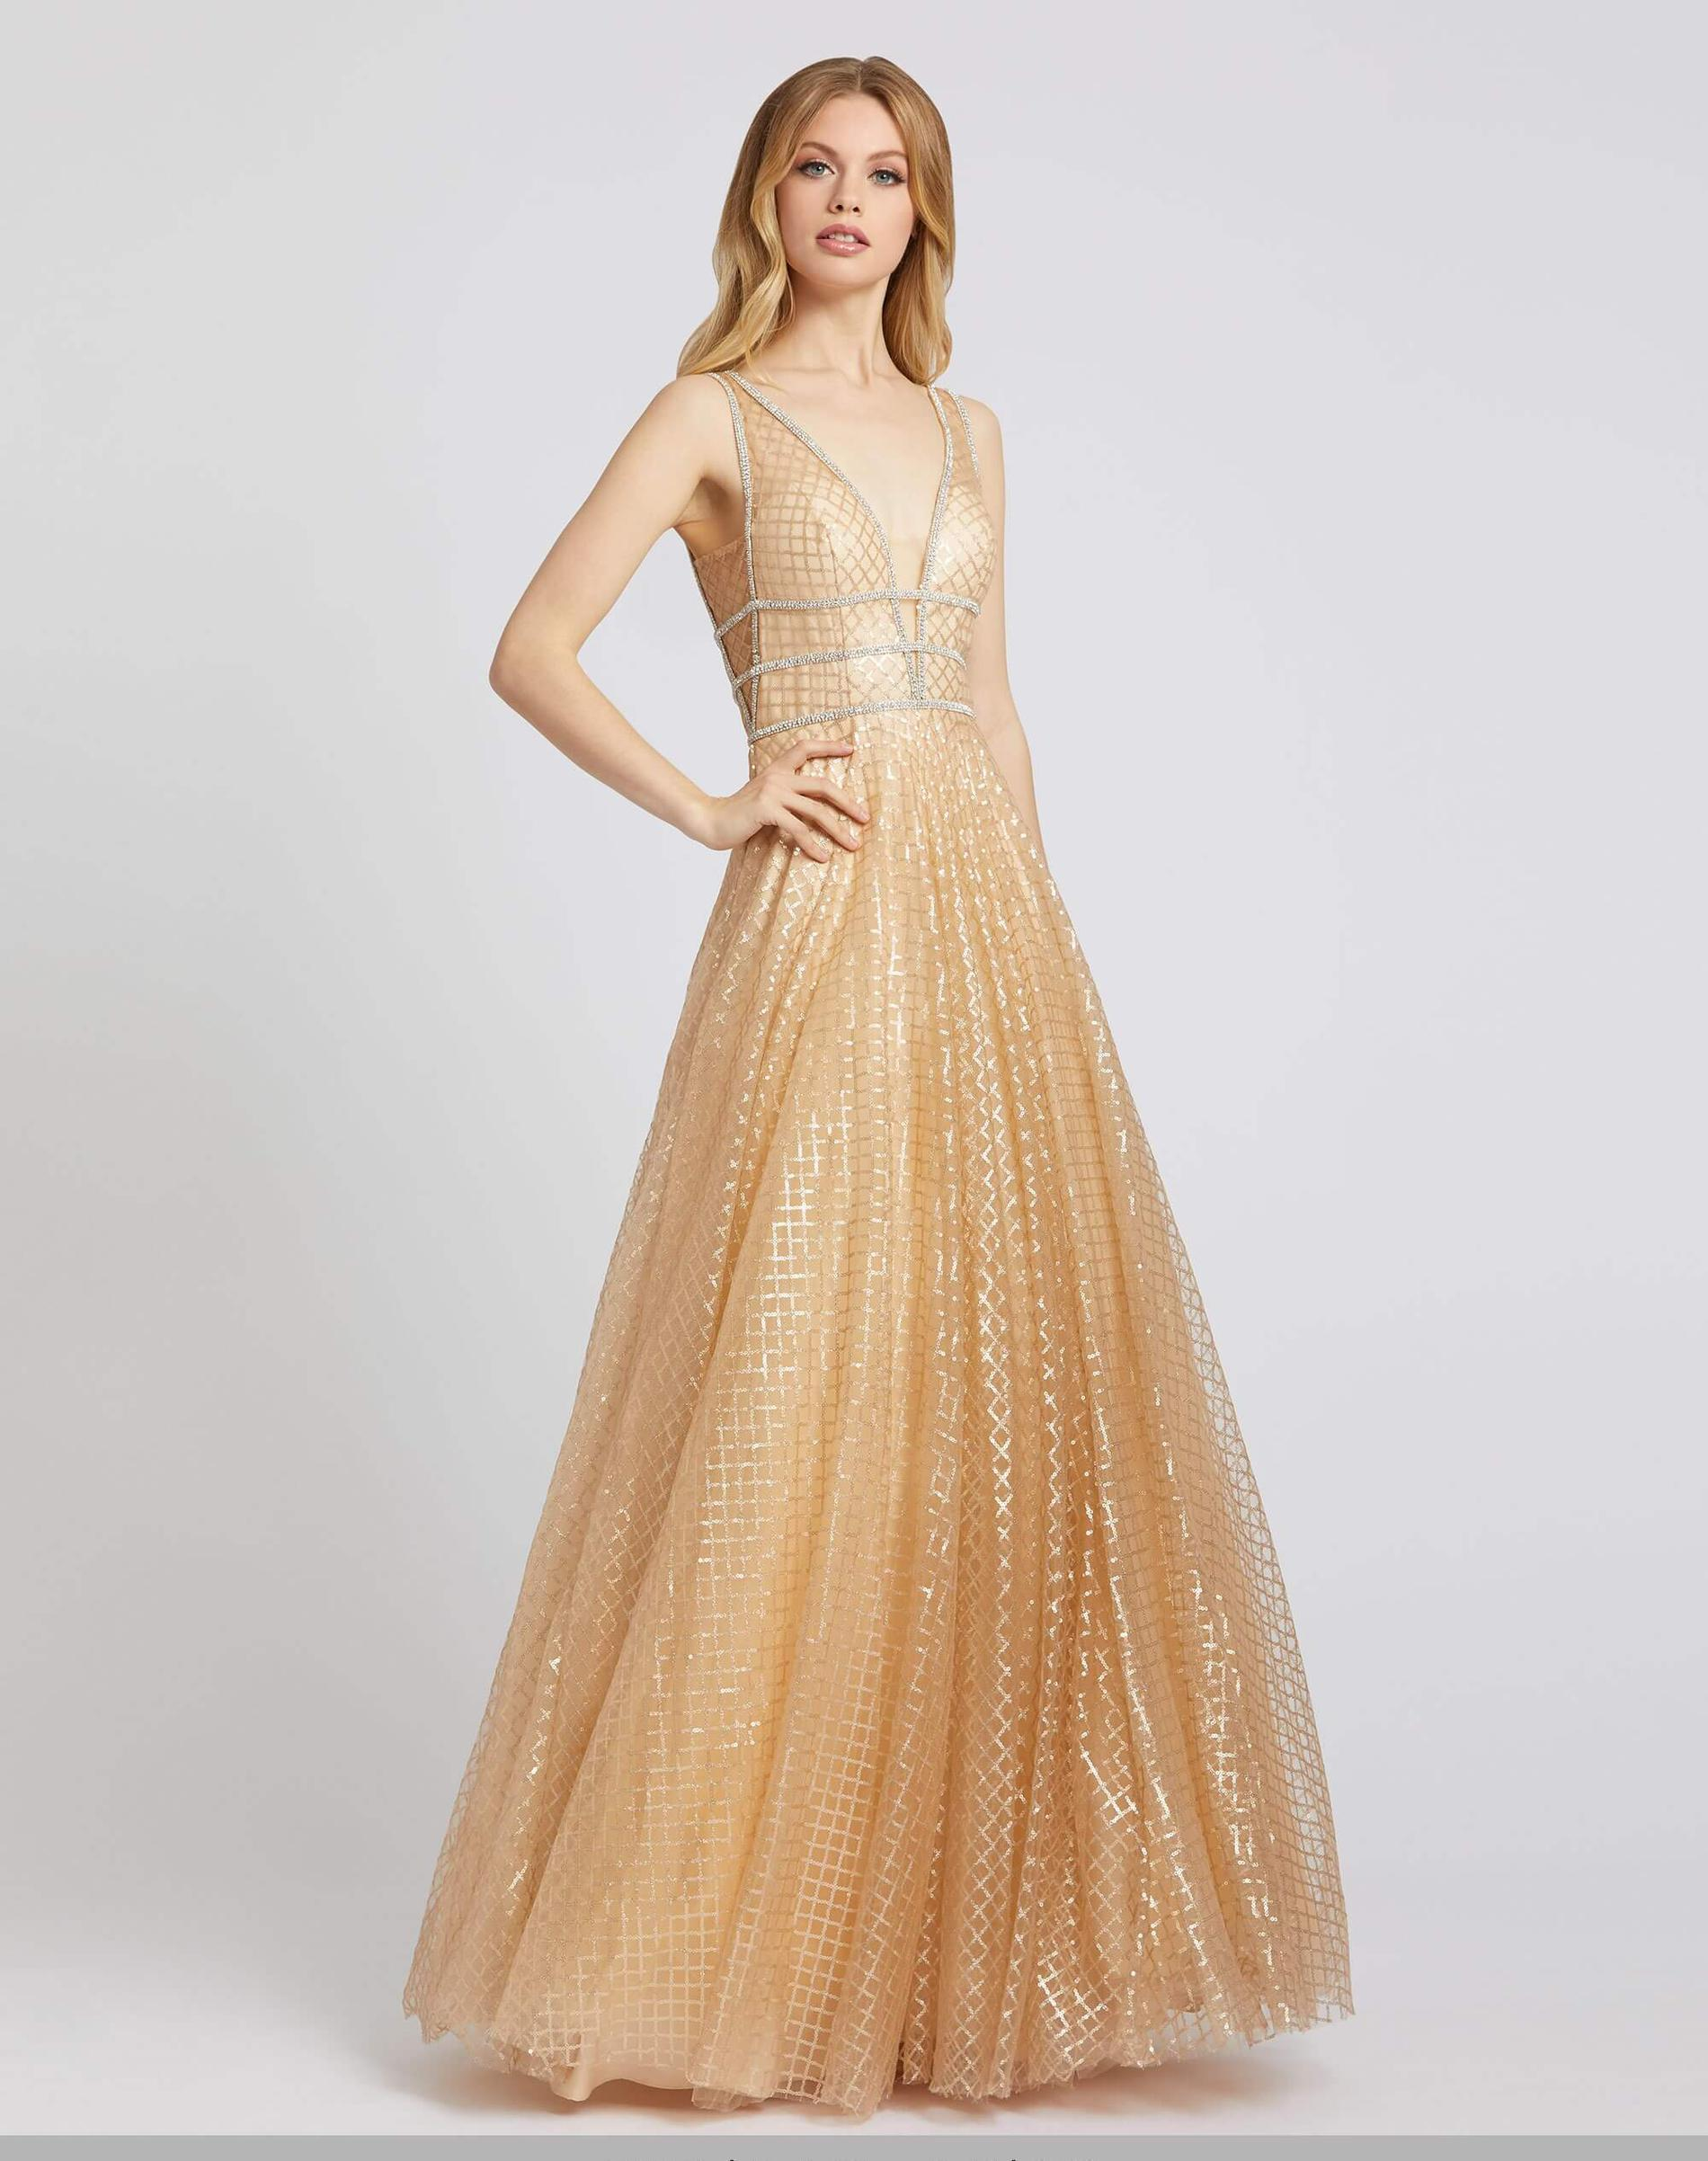 Style 77402 Mac Duggal Gold Size 4 Sheer Tall Height V Neck A-line Dress on Queenly